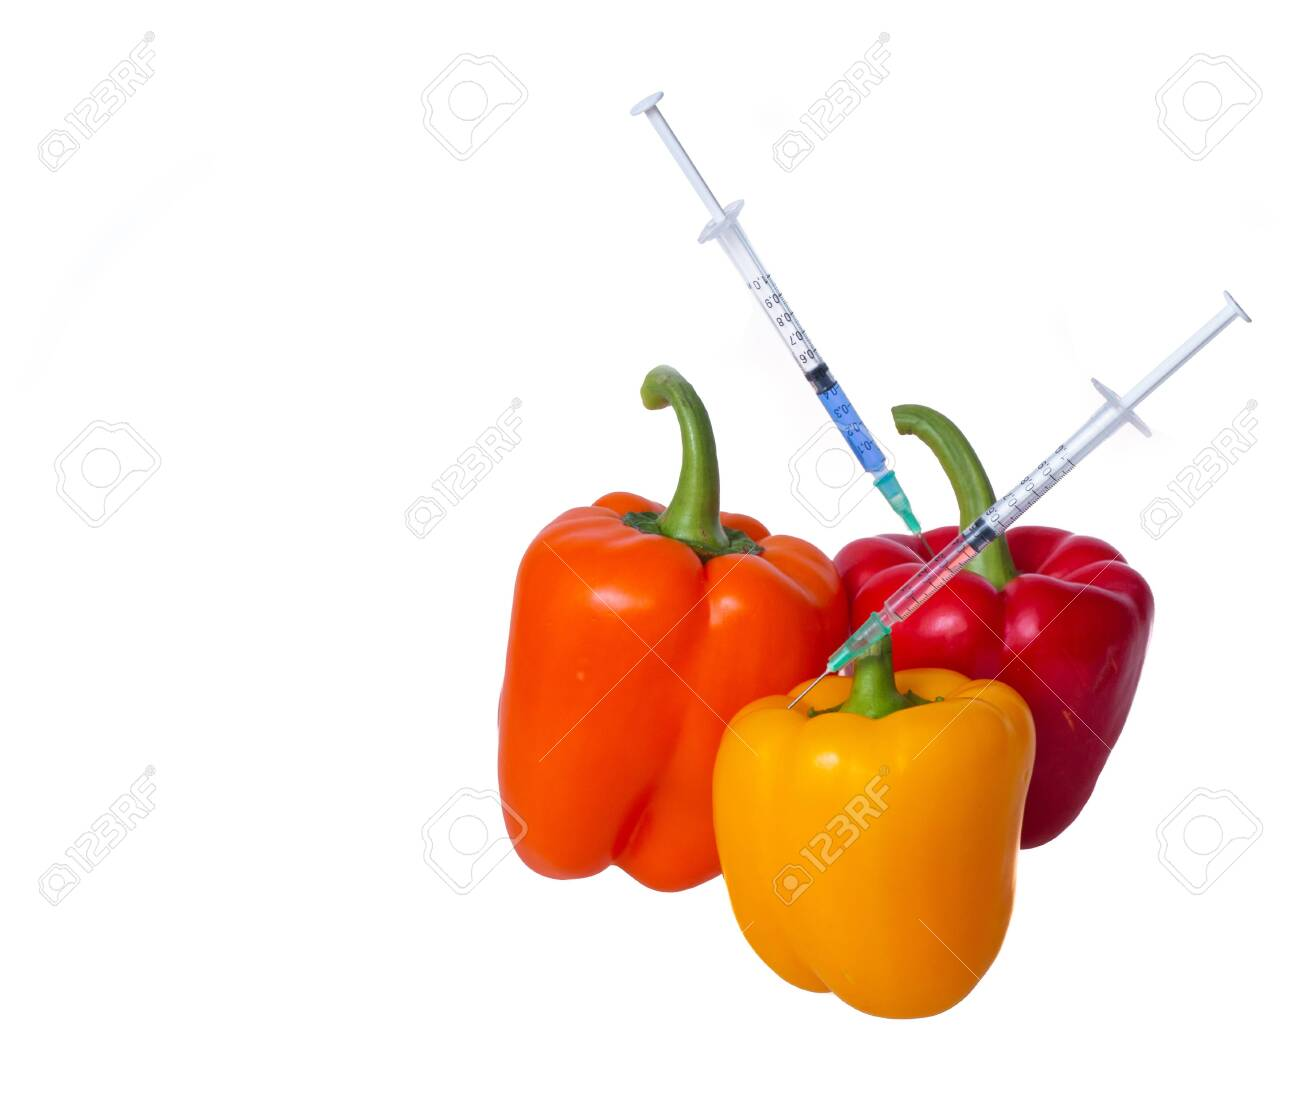 Genetically modified vegetables. GMO food concept. Syringes are stuck in vegetables with chemical additives. Injections into fruits and vegetables. Isolated on white background. - 142962868